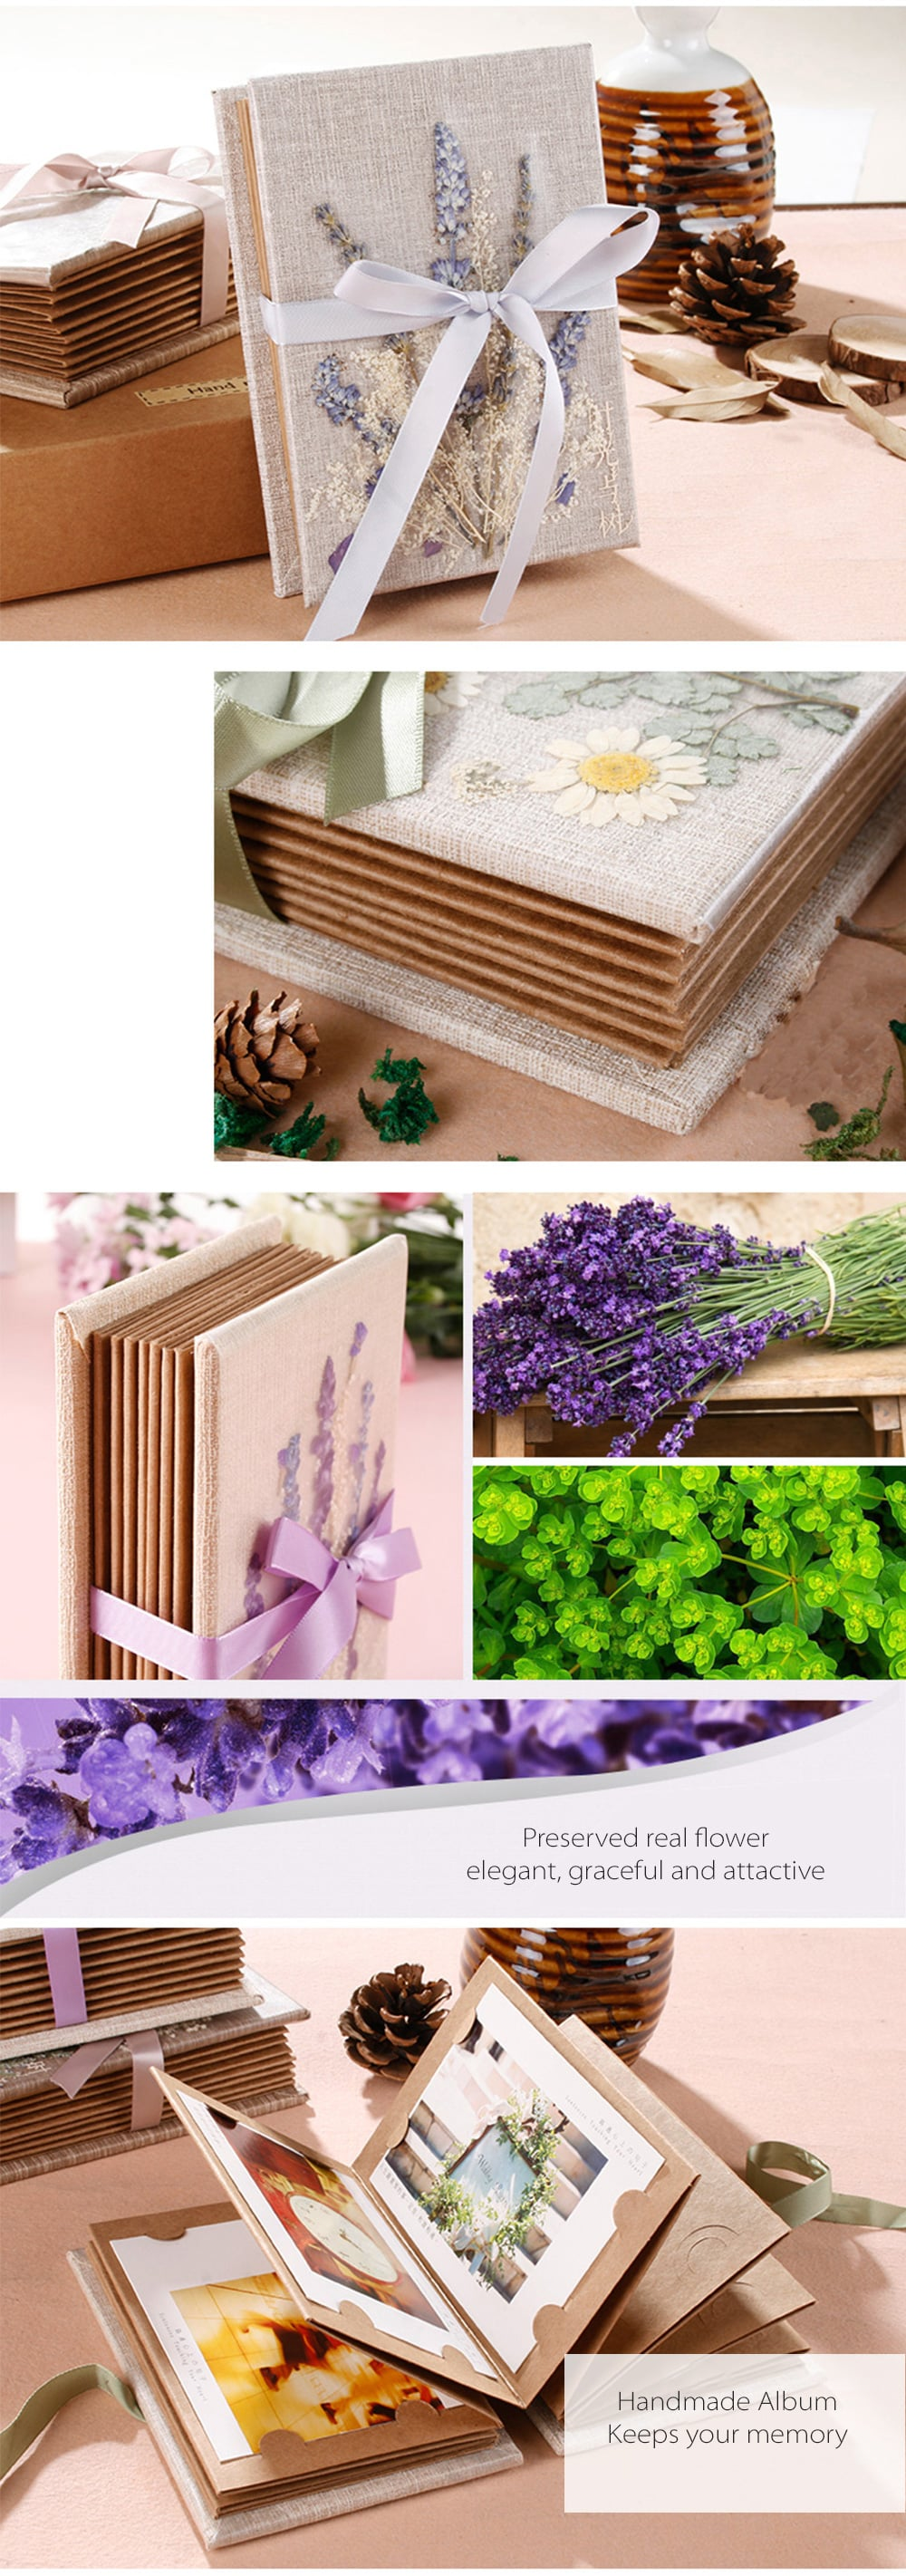 Preserved Flower Accordion Fold Photo Album Keep Your Memory With These Flowers